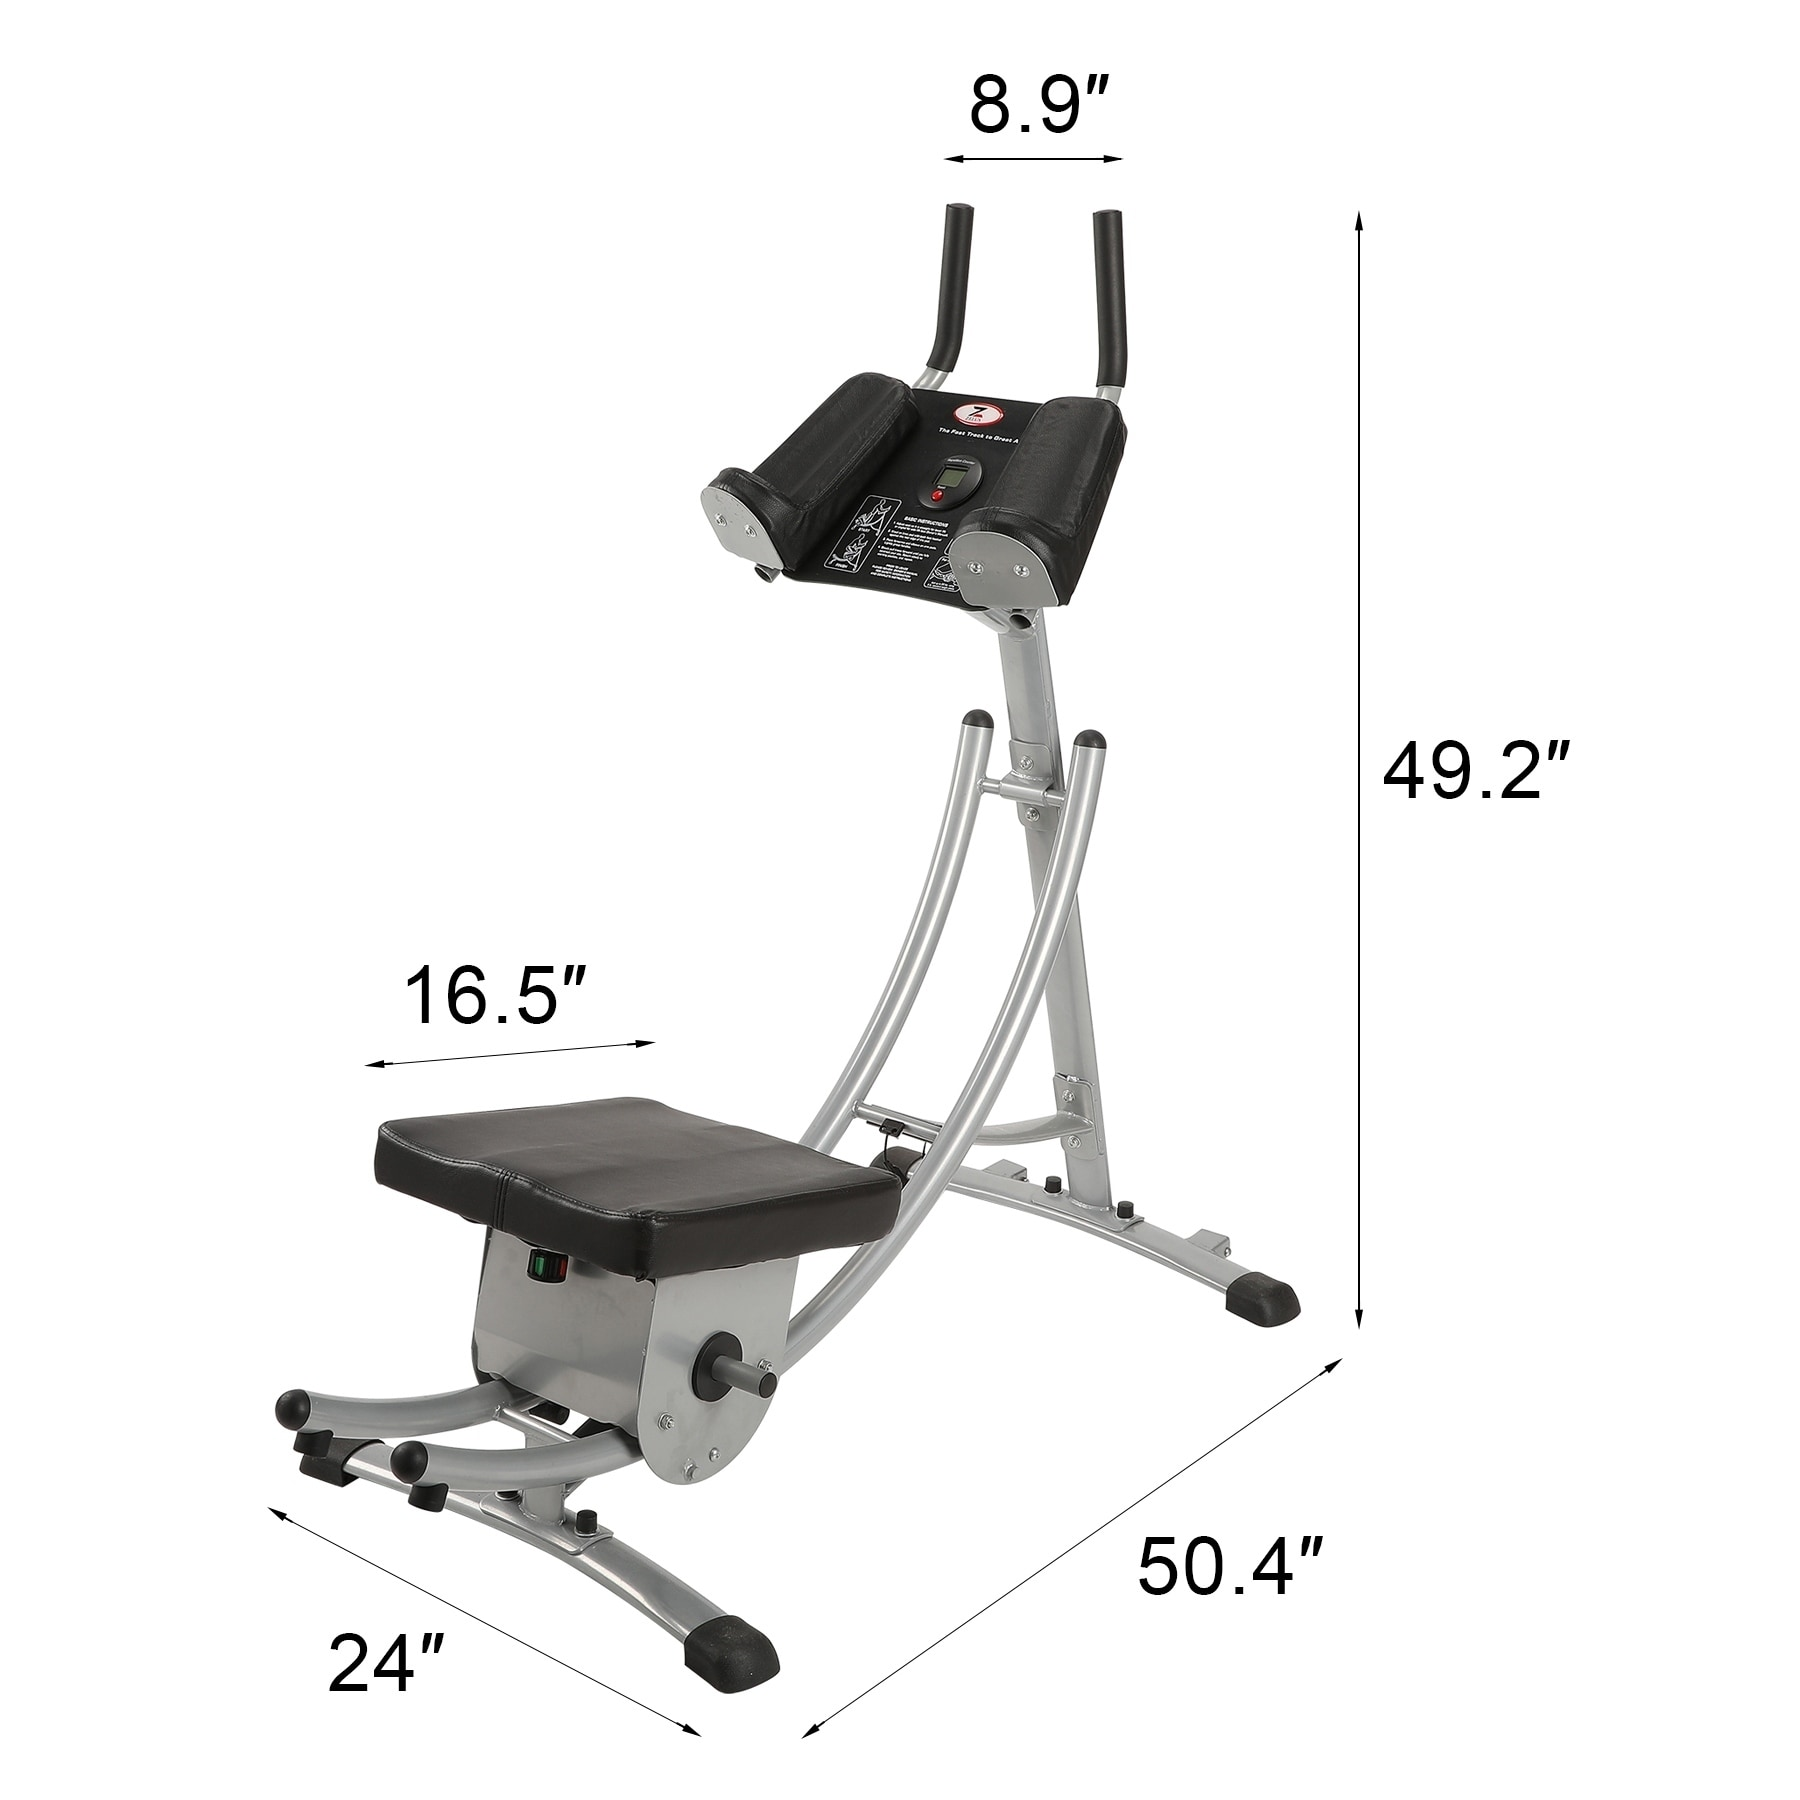 Shop Abdominal Coaster Ab Trainer Fitness Equipment Exercise Home Gym Overstock 28666590